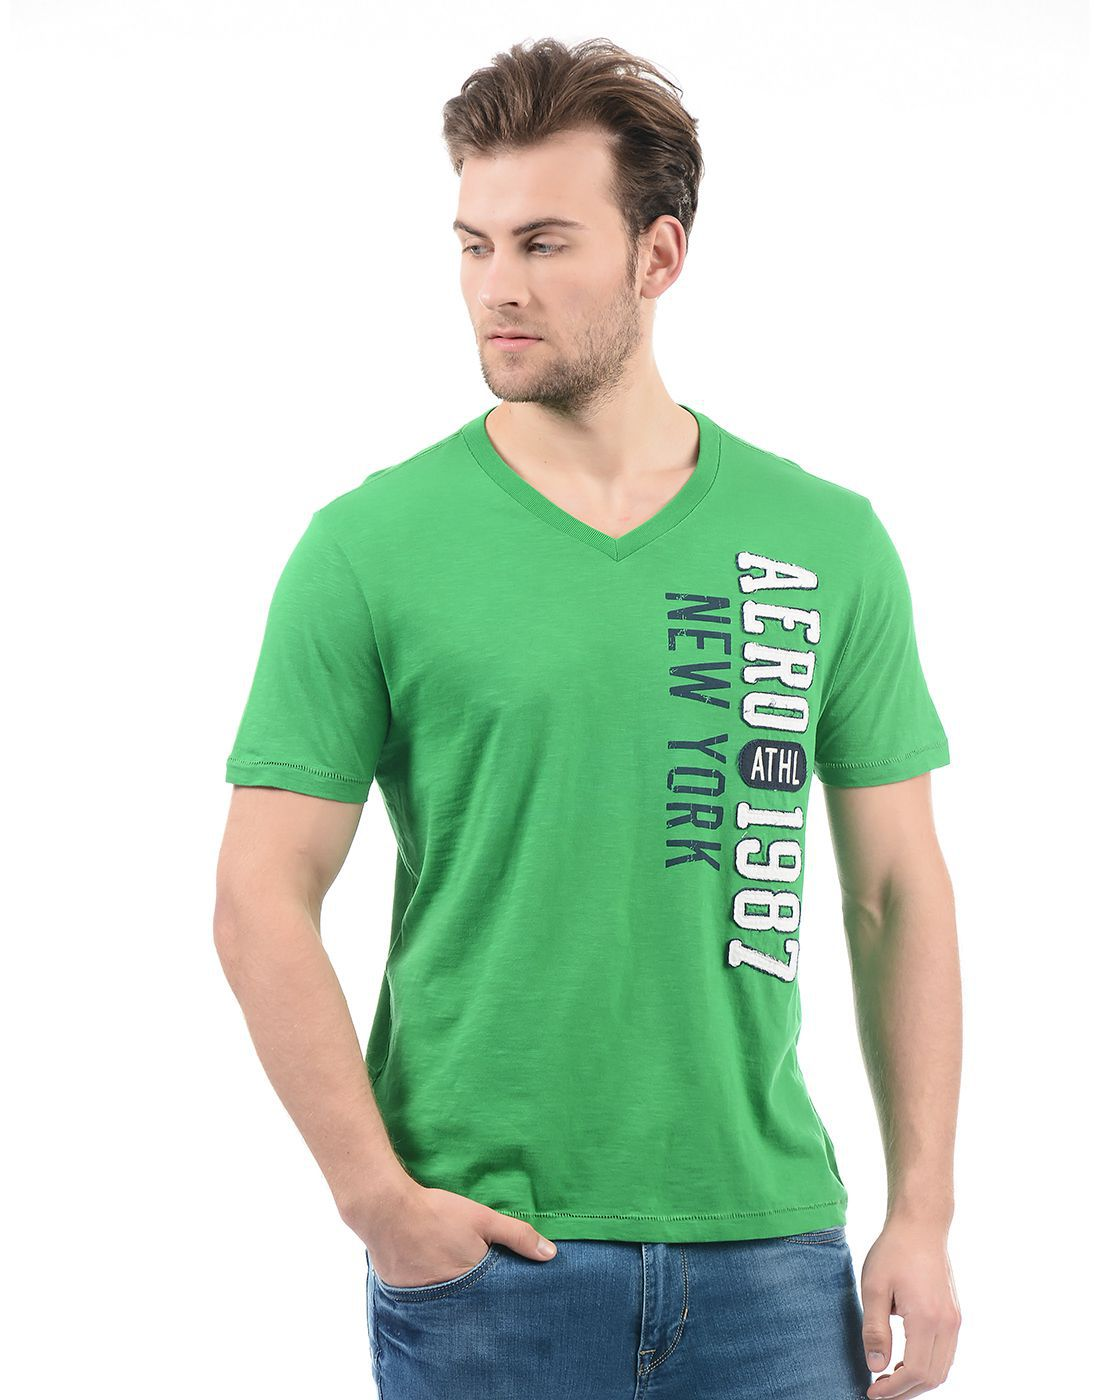 Aeropostale Green V-Neck T-Shirt